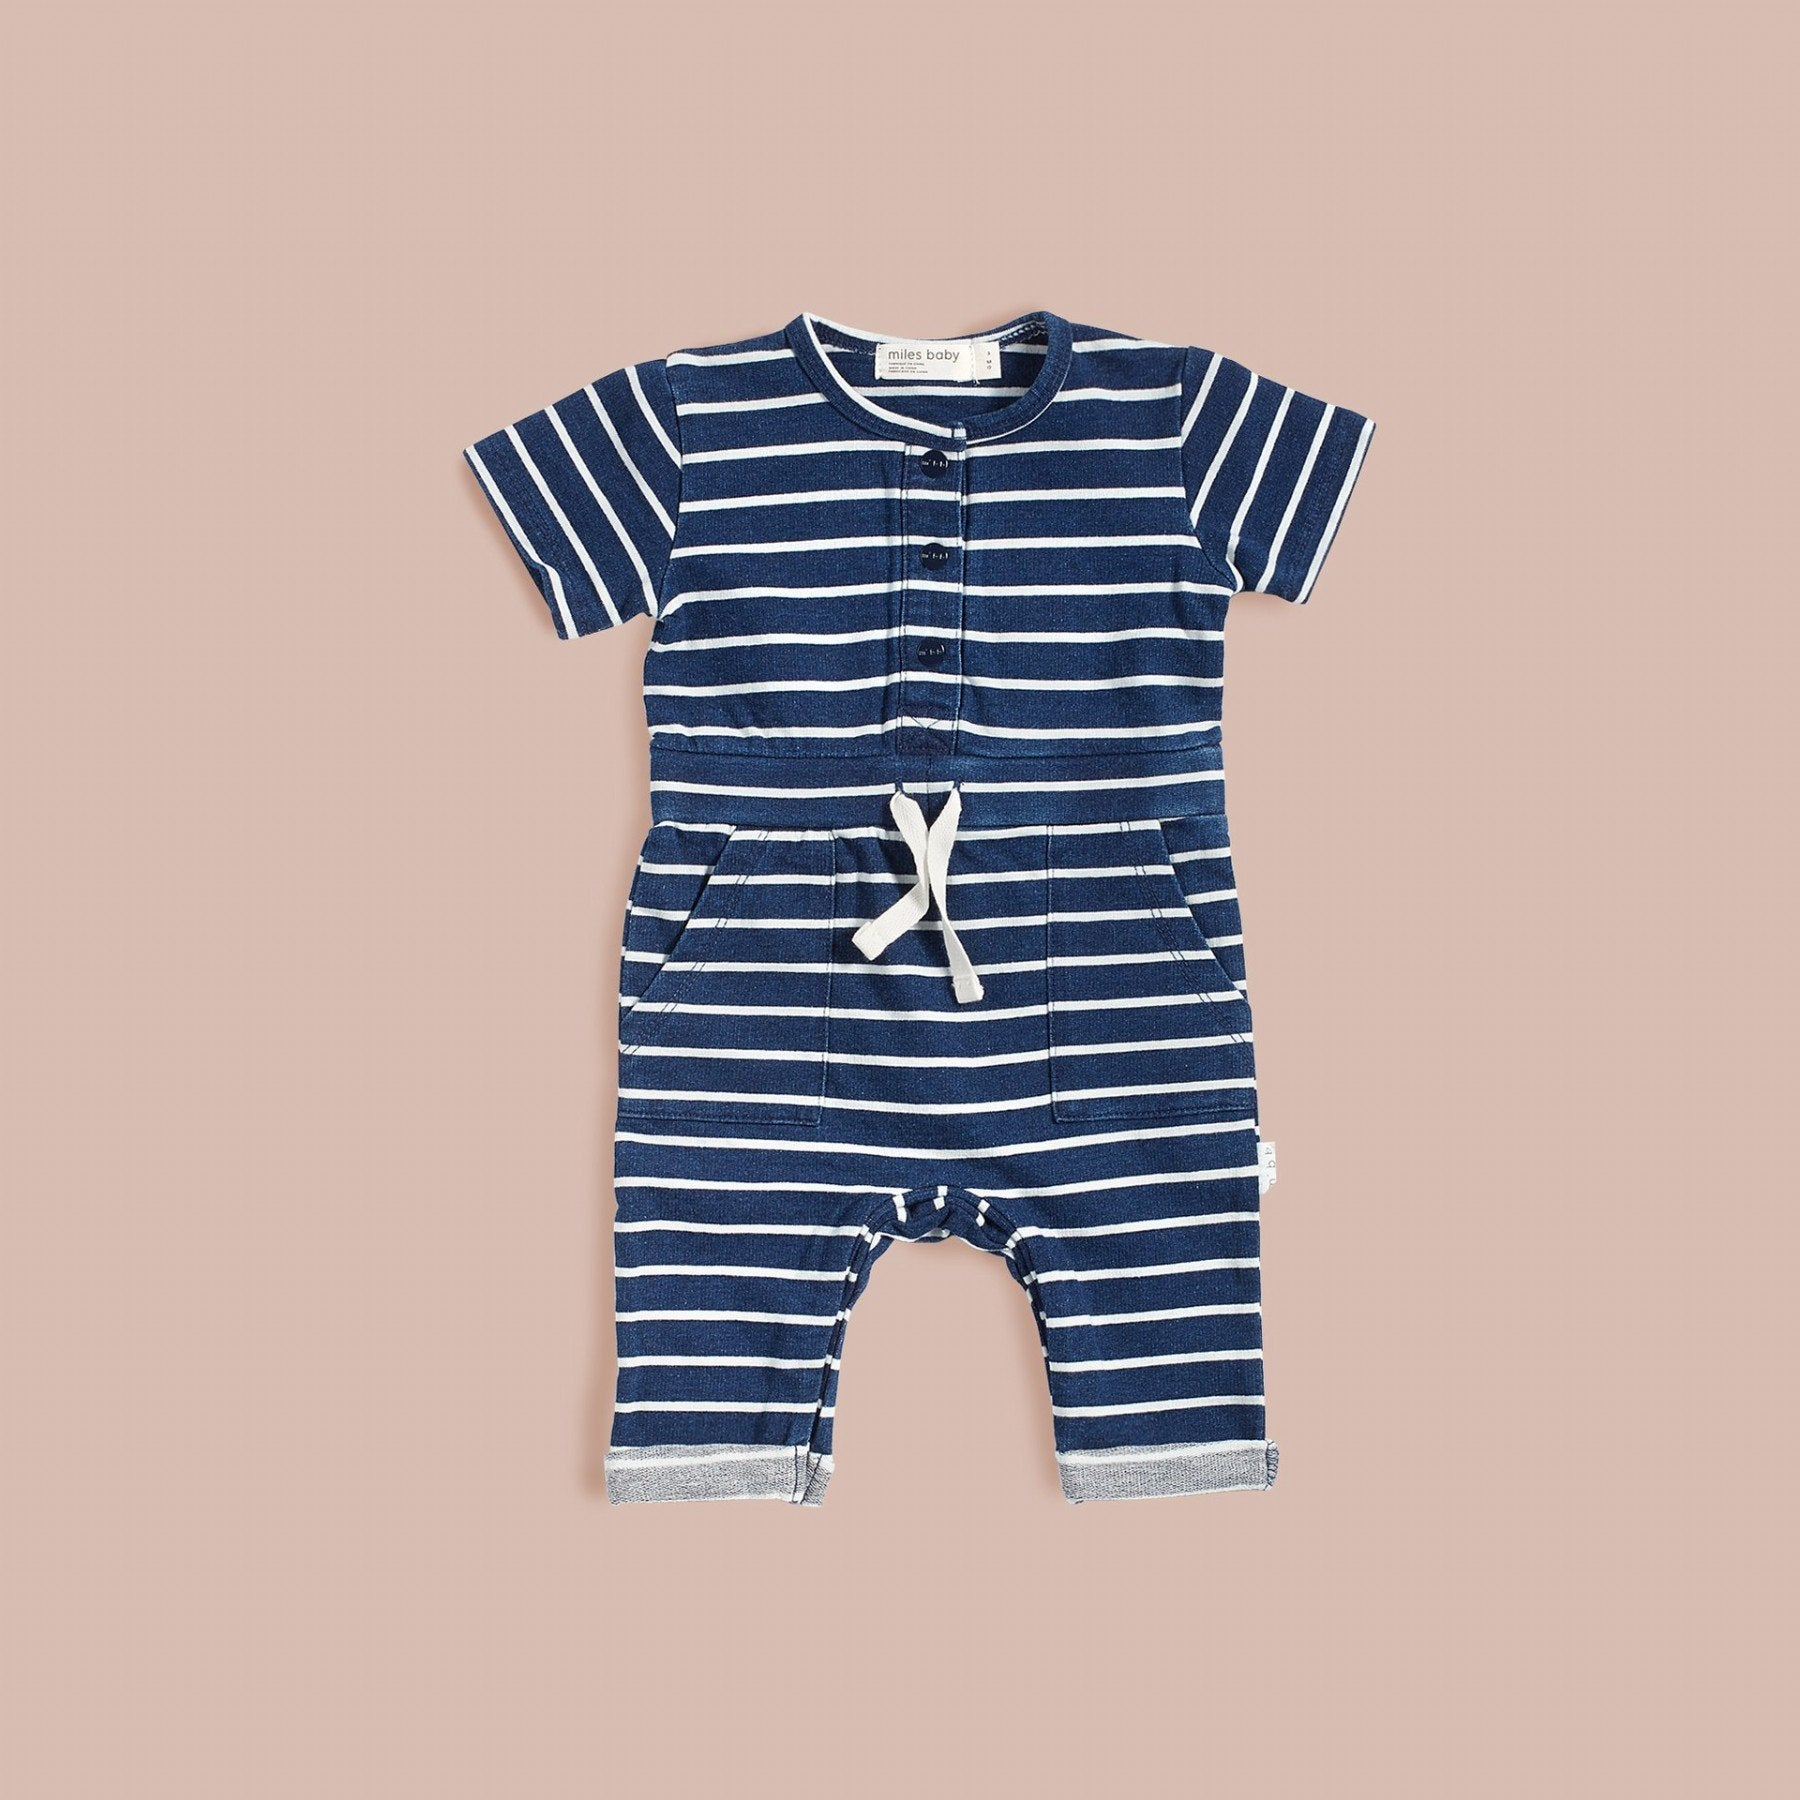 Miles Baby STRIPED INDIGO WASH PLAYSUIT in Blue Denim